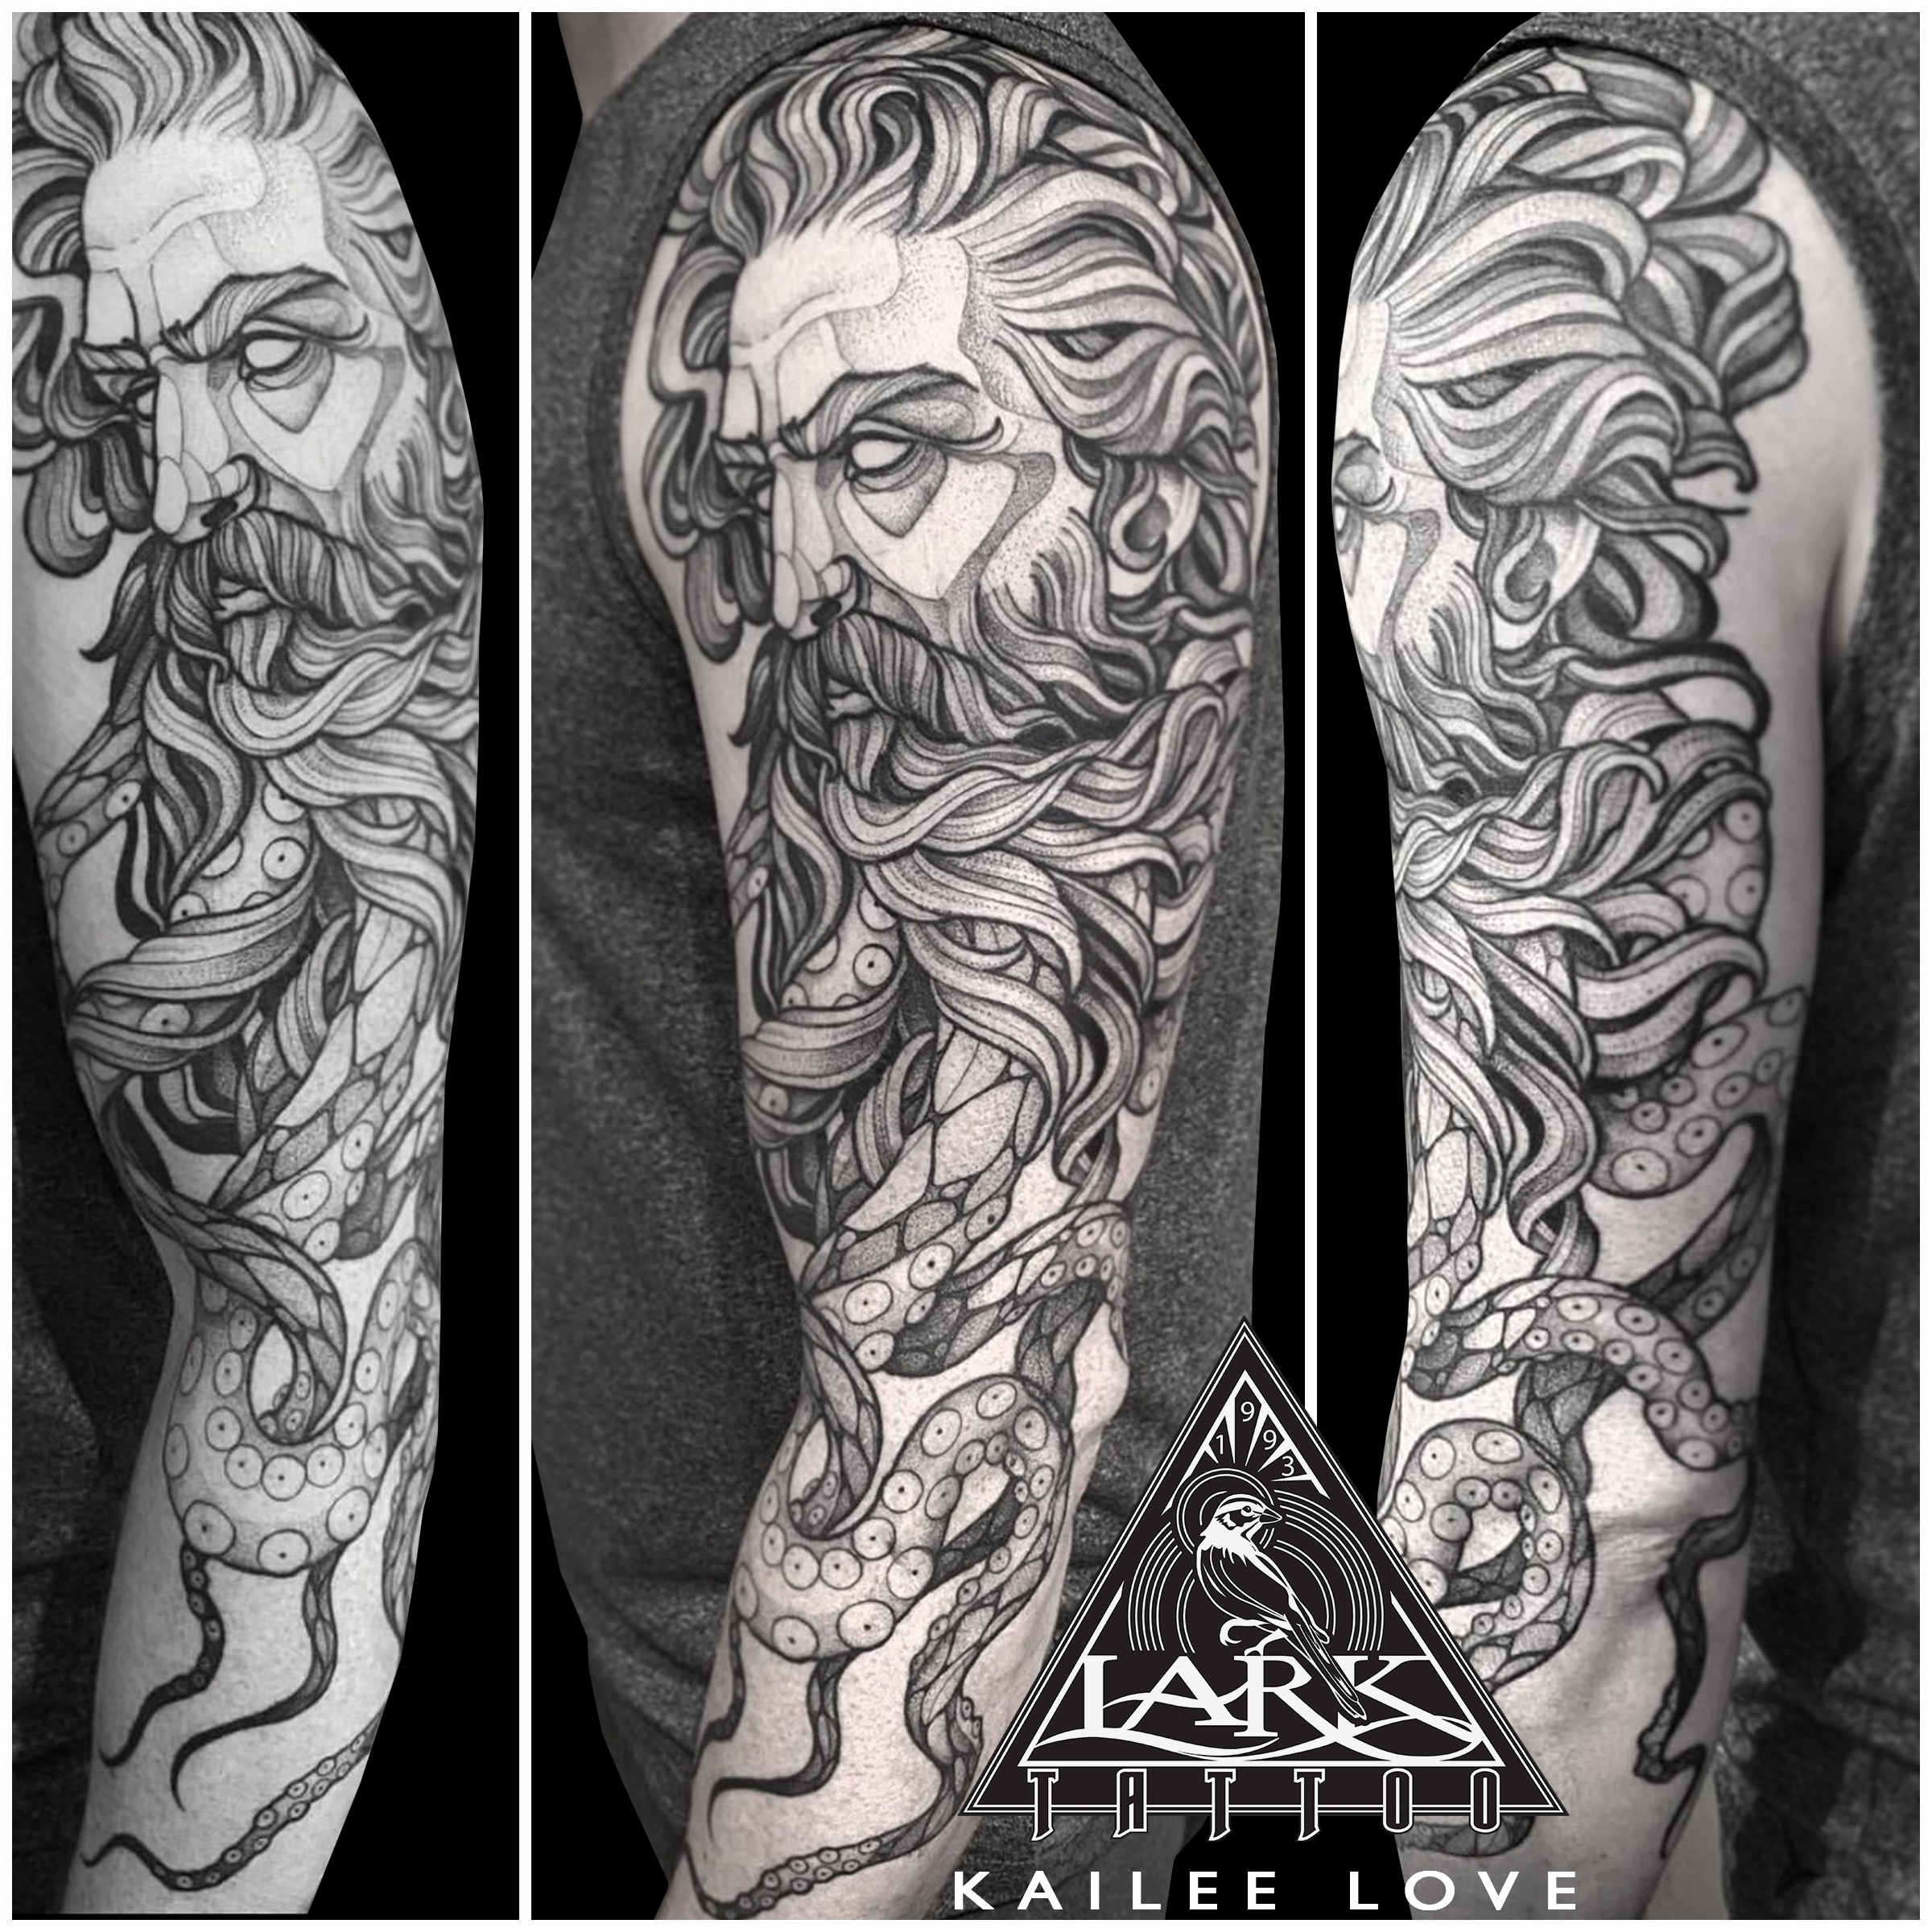 LarkTattoo, KaileeLove, KaileeLoveLarkTattoo, Tattoo, Tattoos, Poseidon, PoseidonTattoo, Mythology, MythologyTattoo, BNG, BNGTattoo, BNGInksociety, BlackAndGray, BlackAndGrayTattoo, BlackAndGrey, BlackAndGreyTattoo, FullSleeve, FullSleeveTattoo, TattooSleeve, SleeveTattoo, LargeScaleTattoo, FullArmTattoo, ArmTattoo, FemaleTattooer, FemaleArtist, LadyTattooer, TattooArtist, Tattoist, Tattooer, LongIslandTattooArtist, LongIslandTattooer, LongIslandTattoo, TattooOfTheDay, Tat, Tats, Tatts, Tatted, Inked, Ink, TattooInk, AmazingInk, AmazingTattoo, BodyArt, LarkTattooWestbury, Westbury, LongIsland, NY, NewYork, USA, Art, Tattedup, InkedUp, LarkTattoos